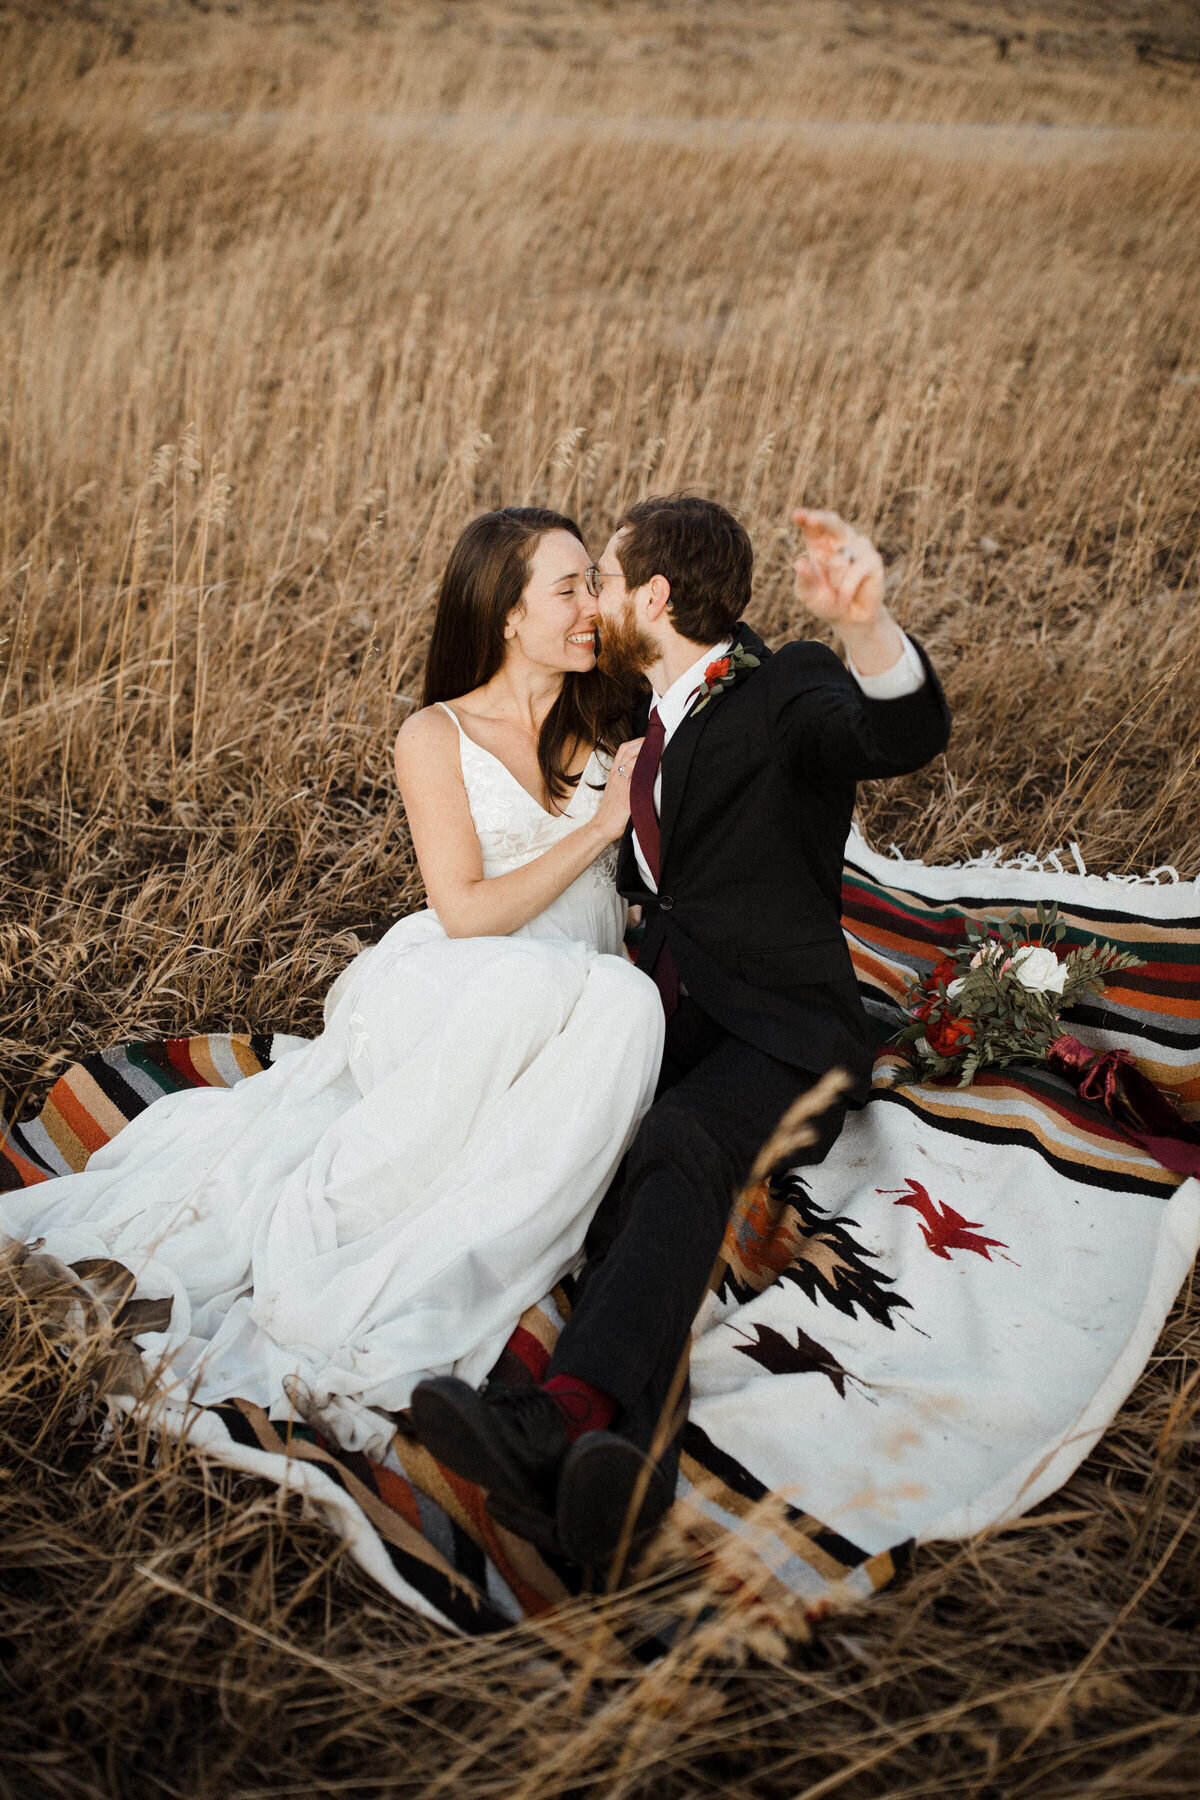 A bride and groom sit on a rustic blanket in a field kissing and waving a hand at the camera